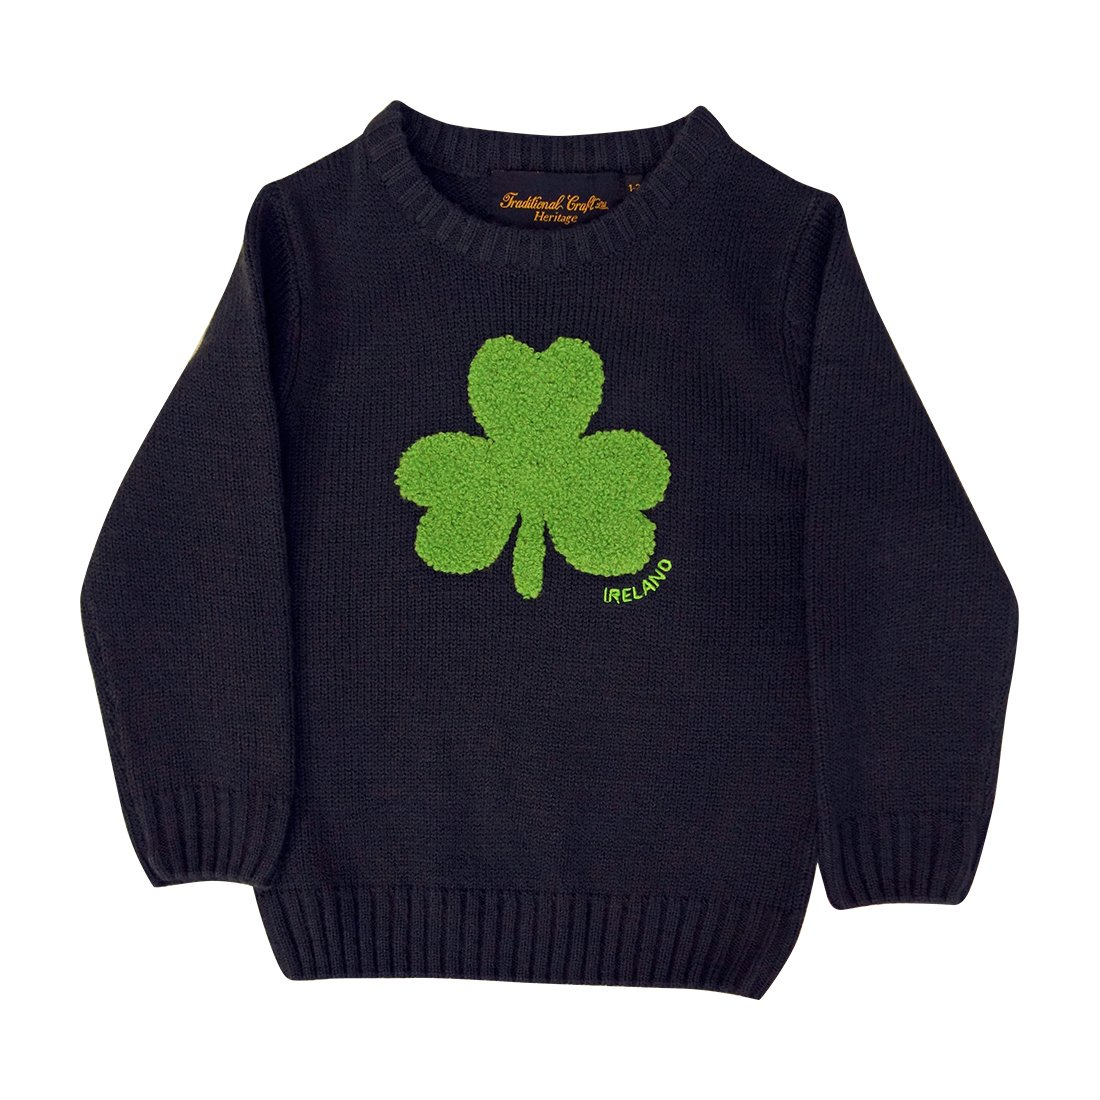 Other Brands Round Neck Ireland Kids Sweater with Fluffy Shamrock, Navy Colour